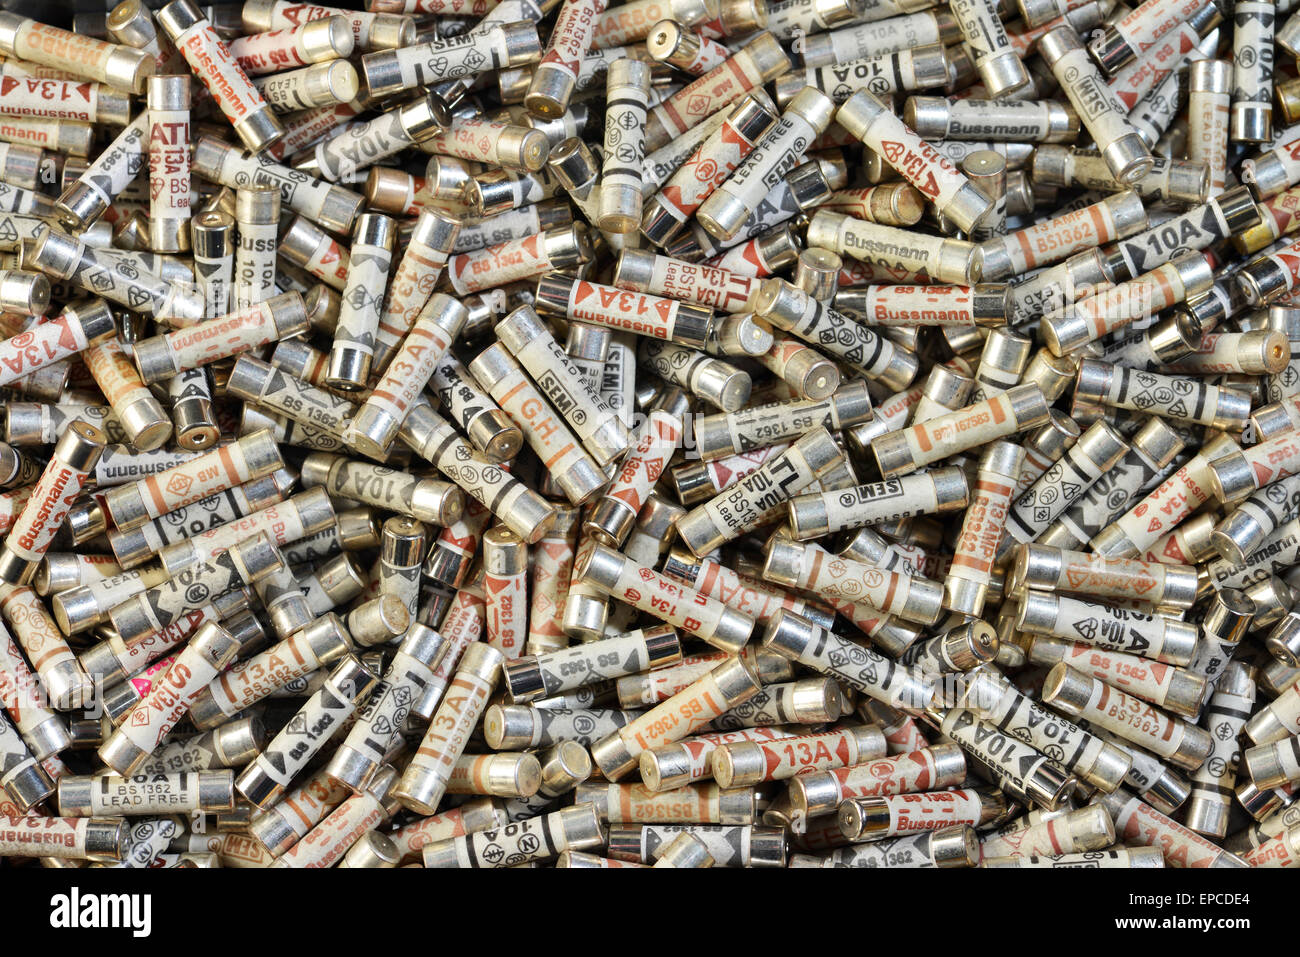 An assortment of electrical fuses - Stock Image